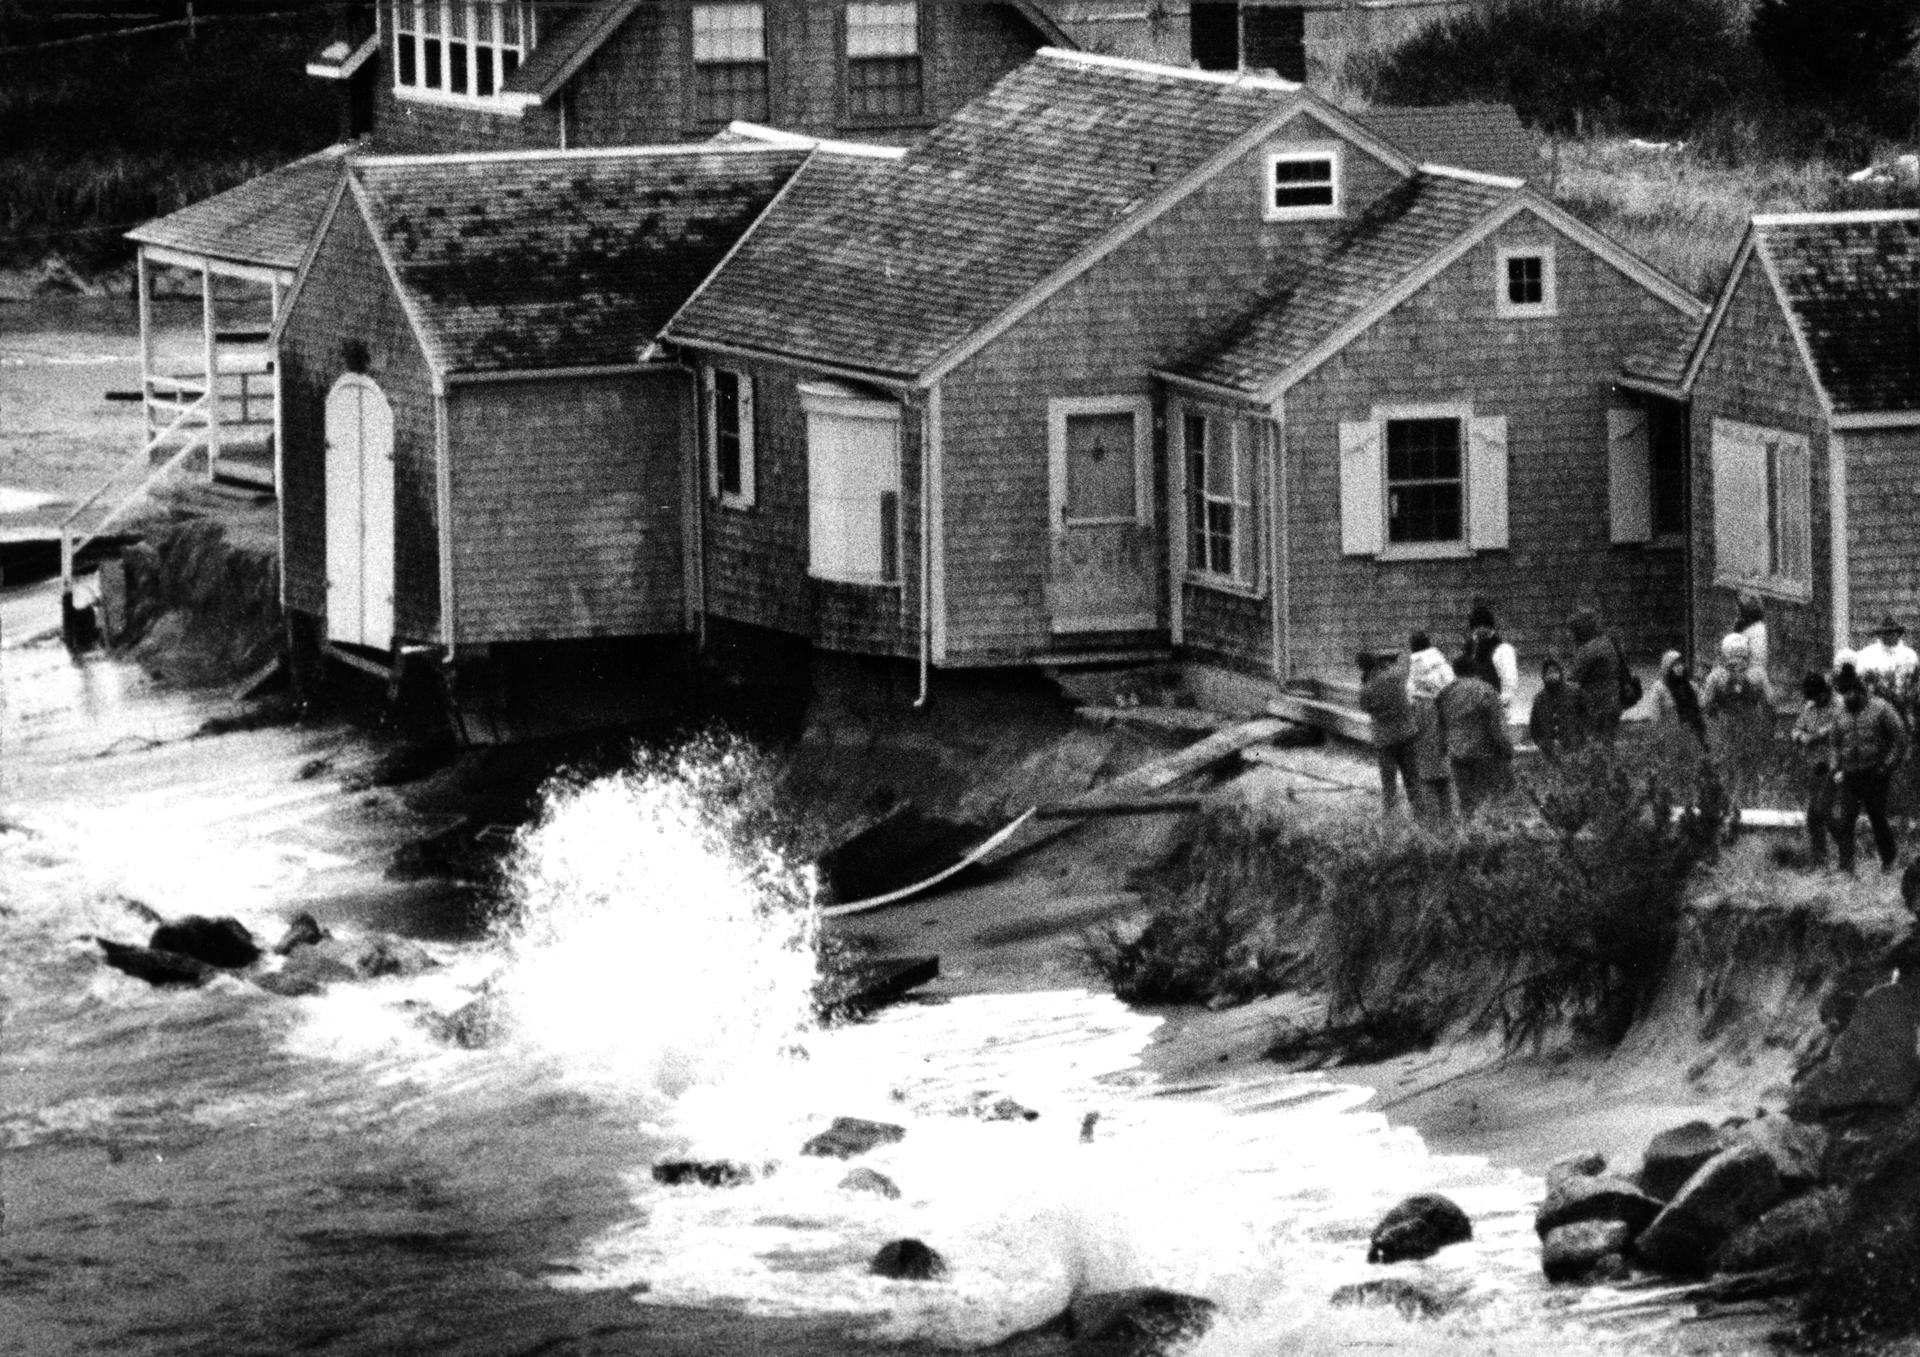 Chatham, MA - 1/20/1988: A small group of onlookers gather around a house on Andrew Harding Road in Chatham, MA as waves hit the beach at high tide on Jan. 20, 1988. Soil erosion has threatened the home. (Barry Chin/Globe Staff) --- BGPA Reference: 190327_BS_010